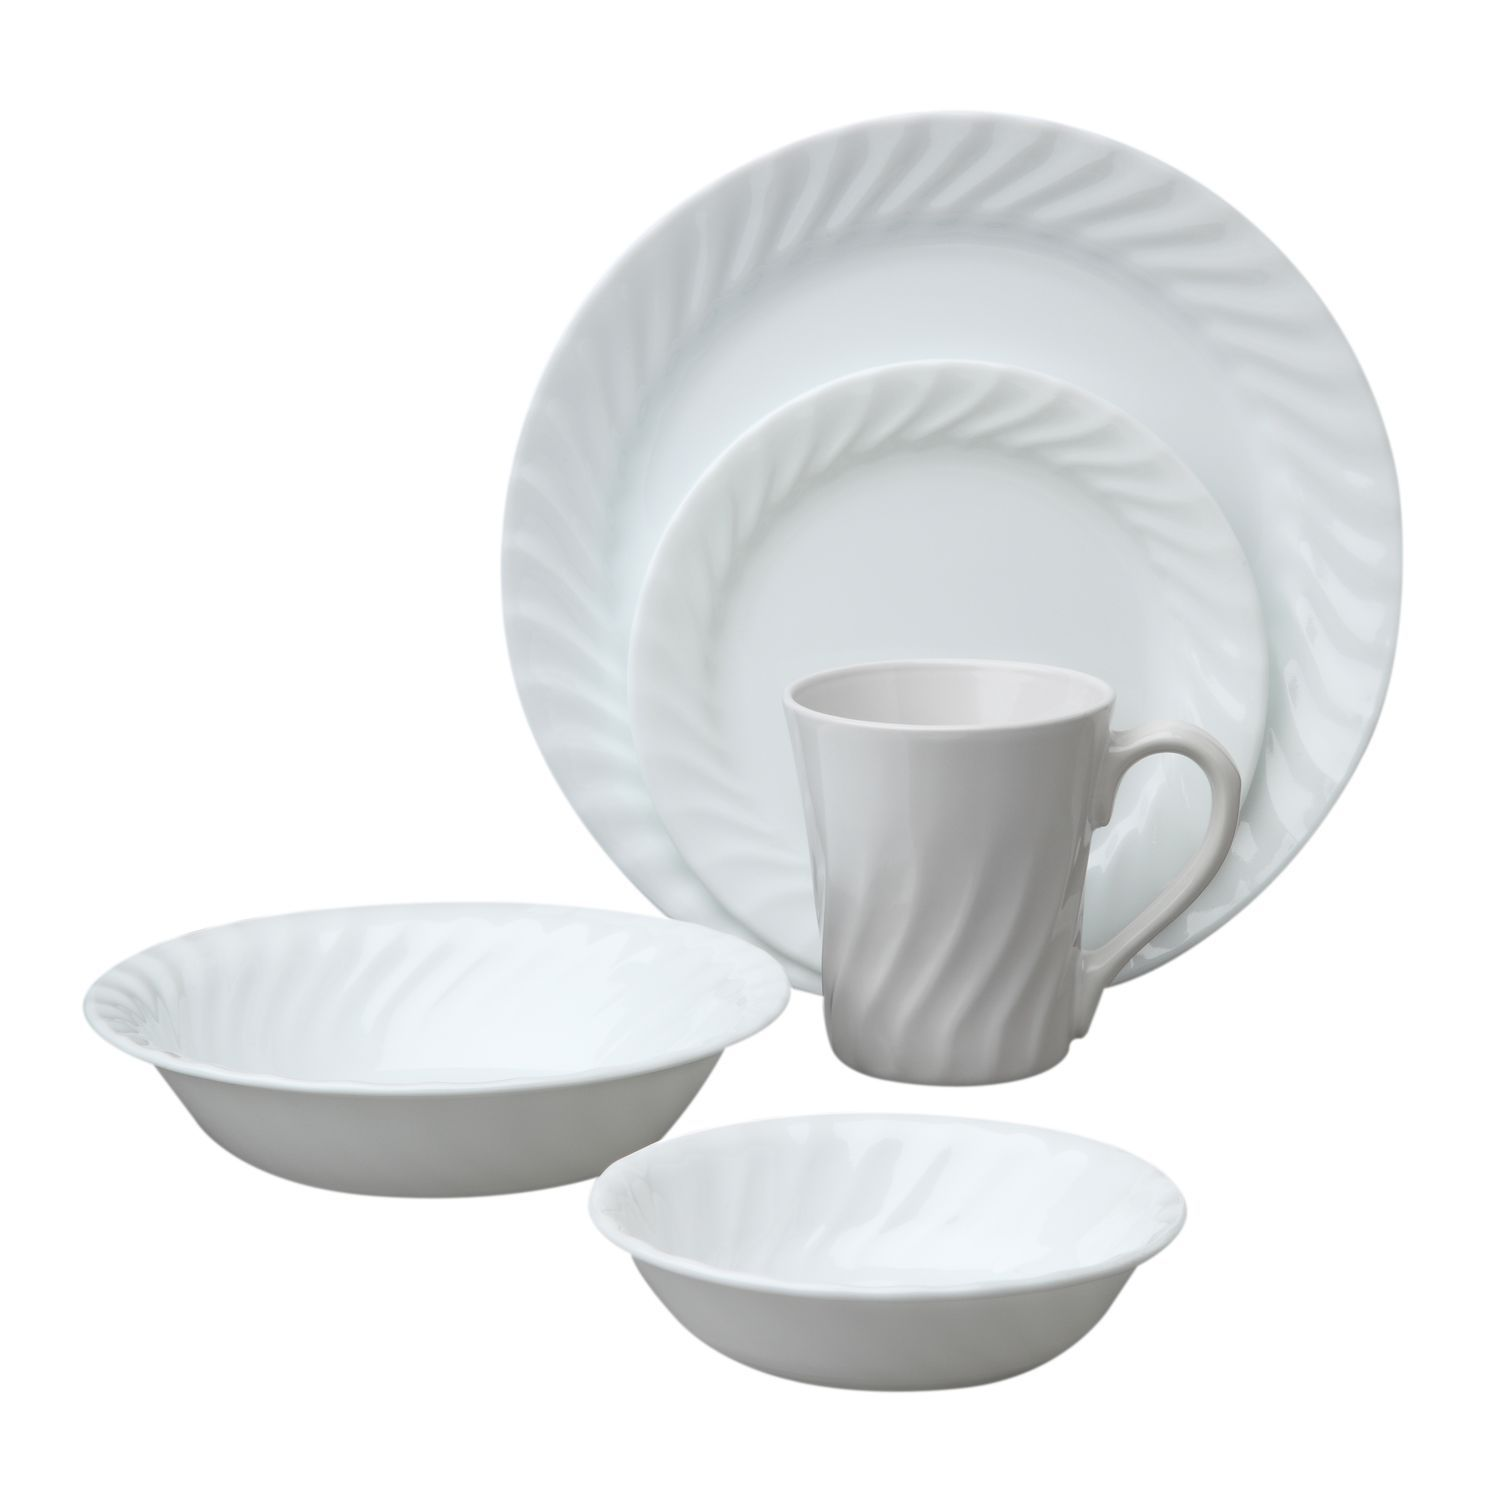 Corelle® Vive™ Enhancements 30-Pc Dinnerware SetVive™ Enhancements 30-Pc Dinnerware Set